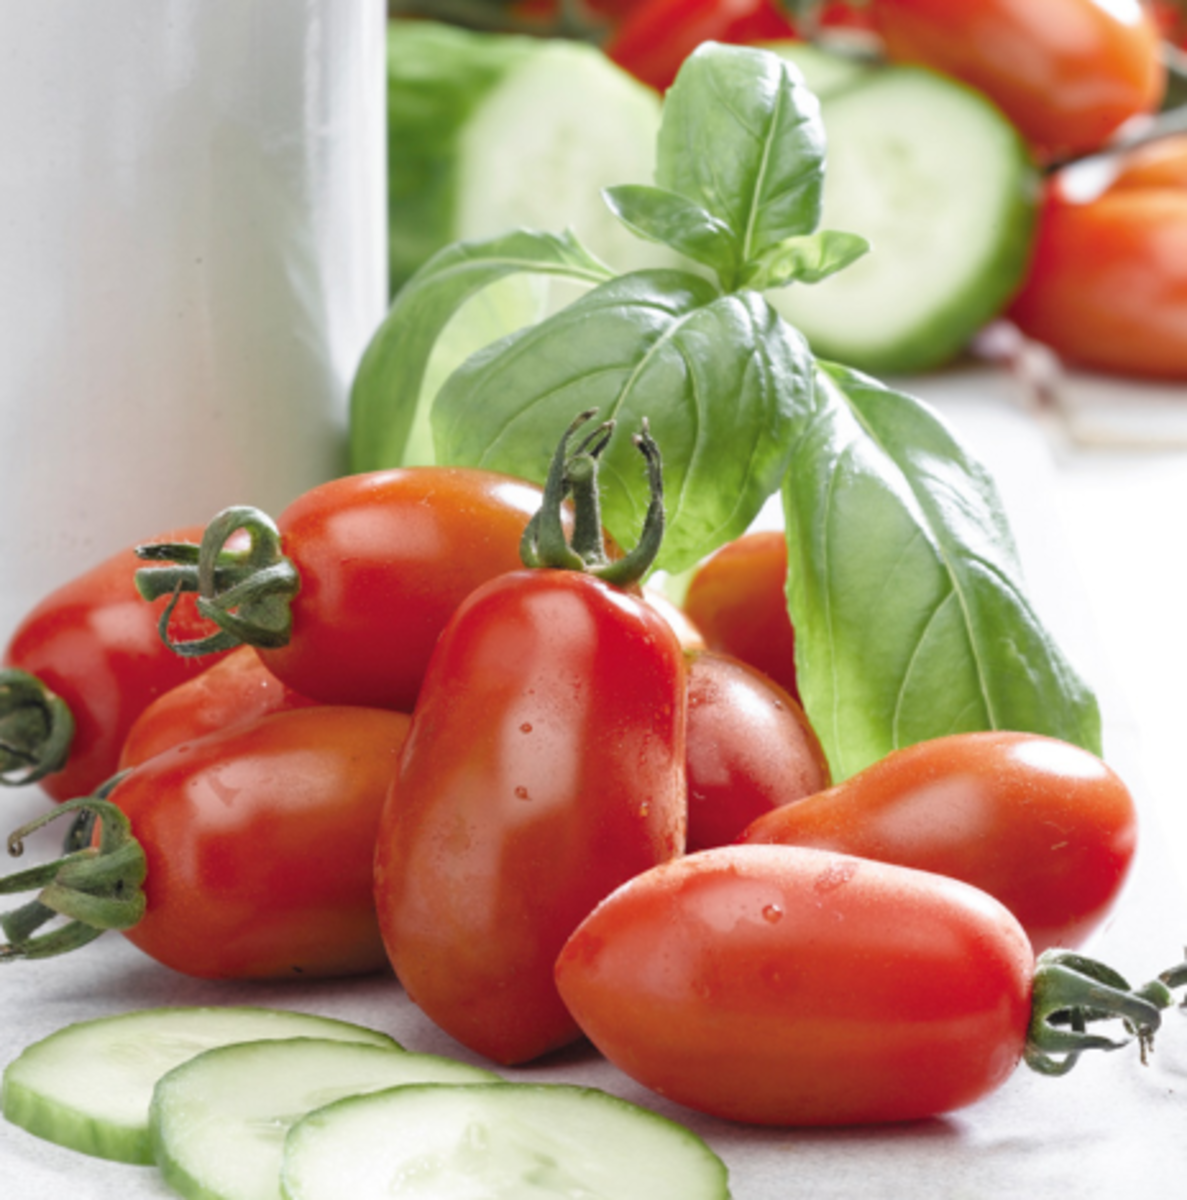 What Are the Best Tomato Varieties to Grow for Making Sauces